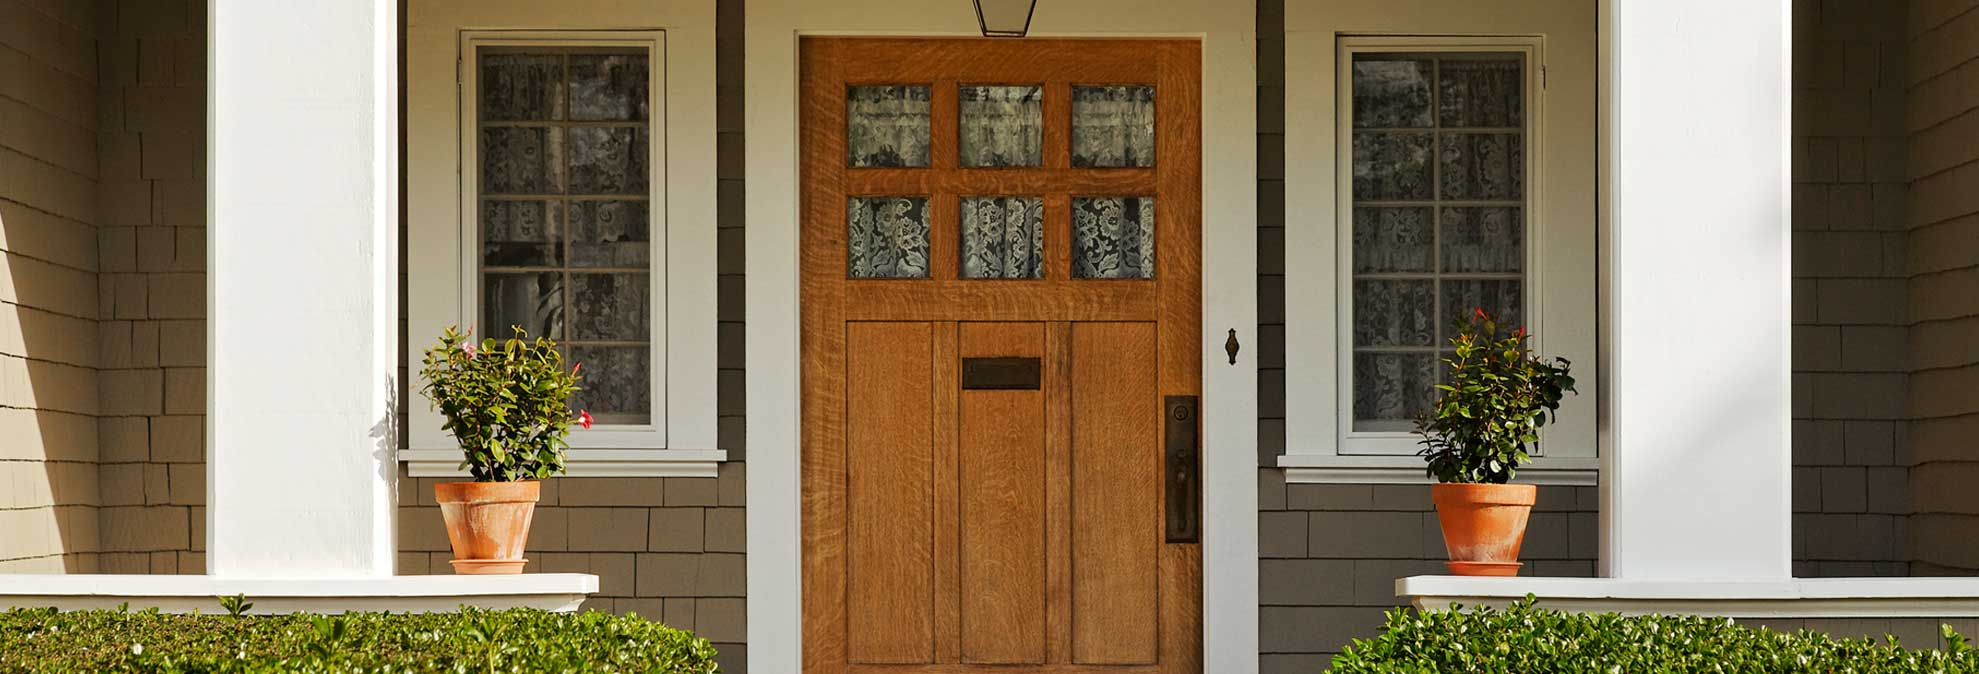 Best entry door buying guide consumer reports for Entrance doors for sale